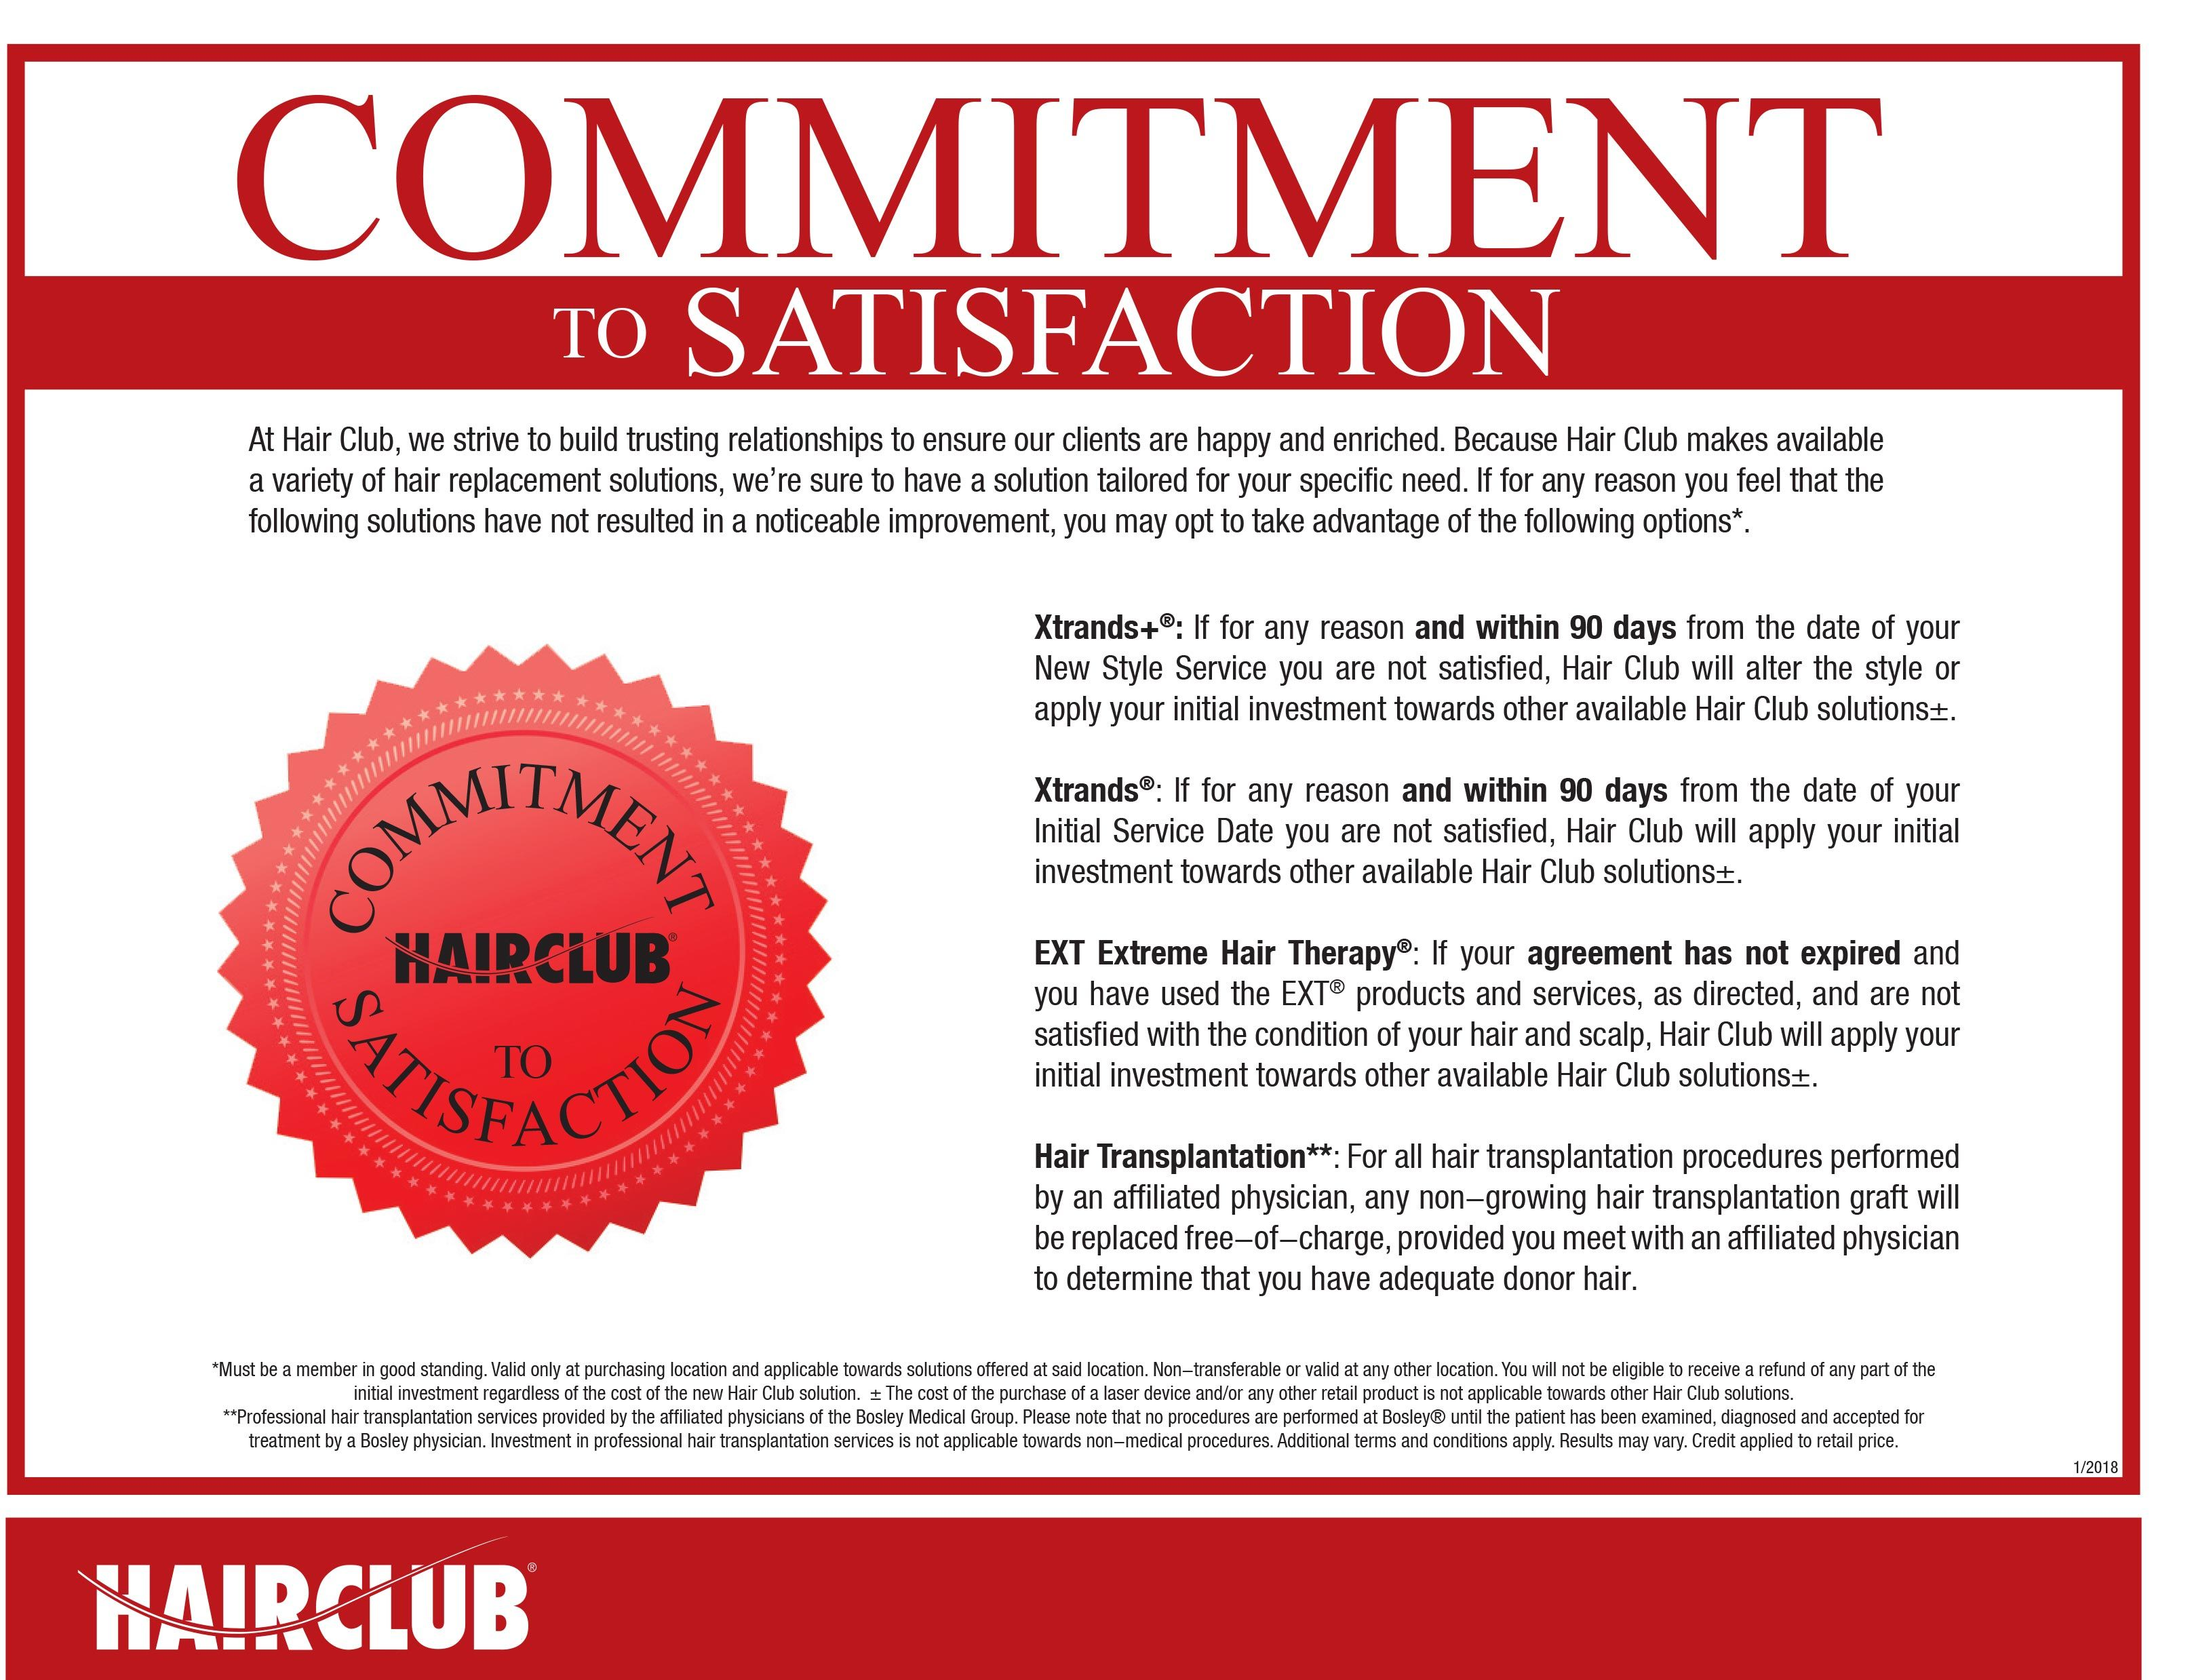 Hair Club Commitment To Satisfaction, Full Commitment Image